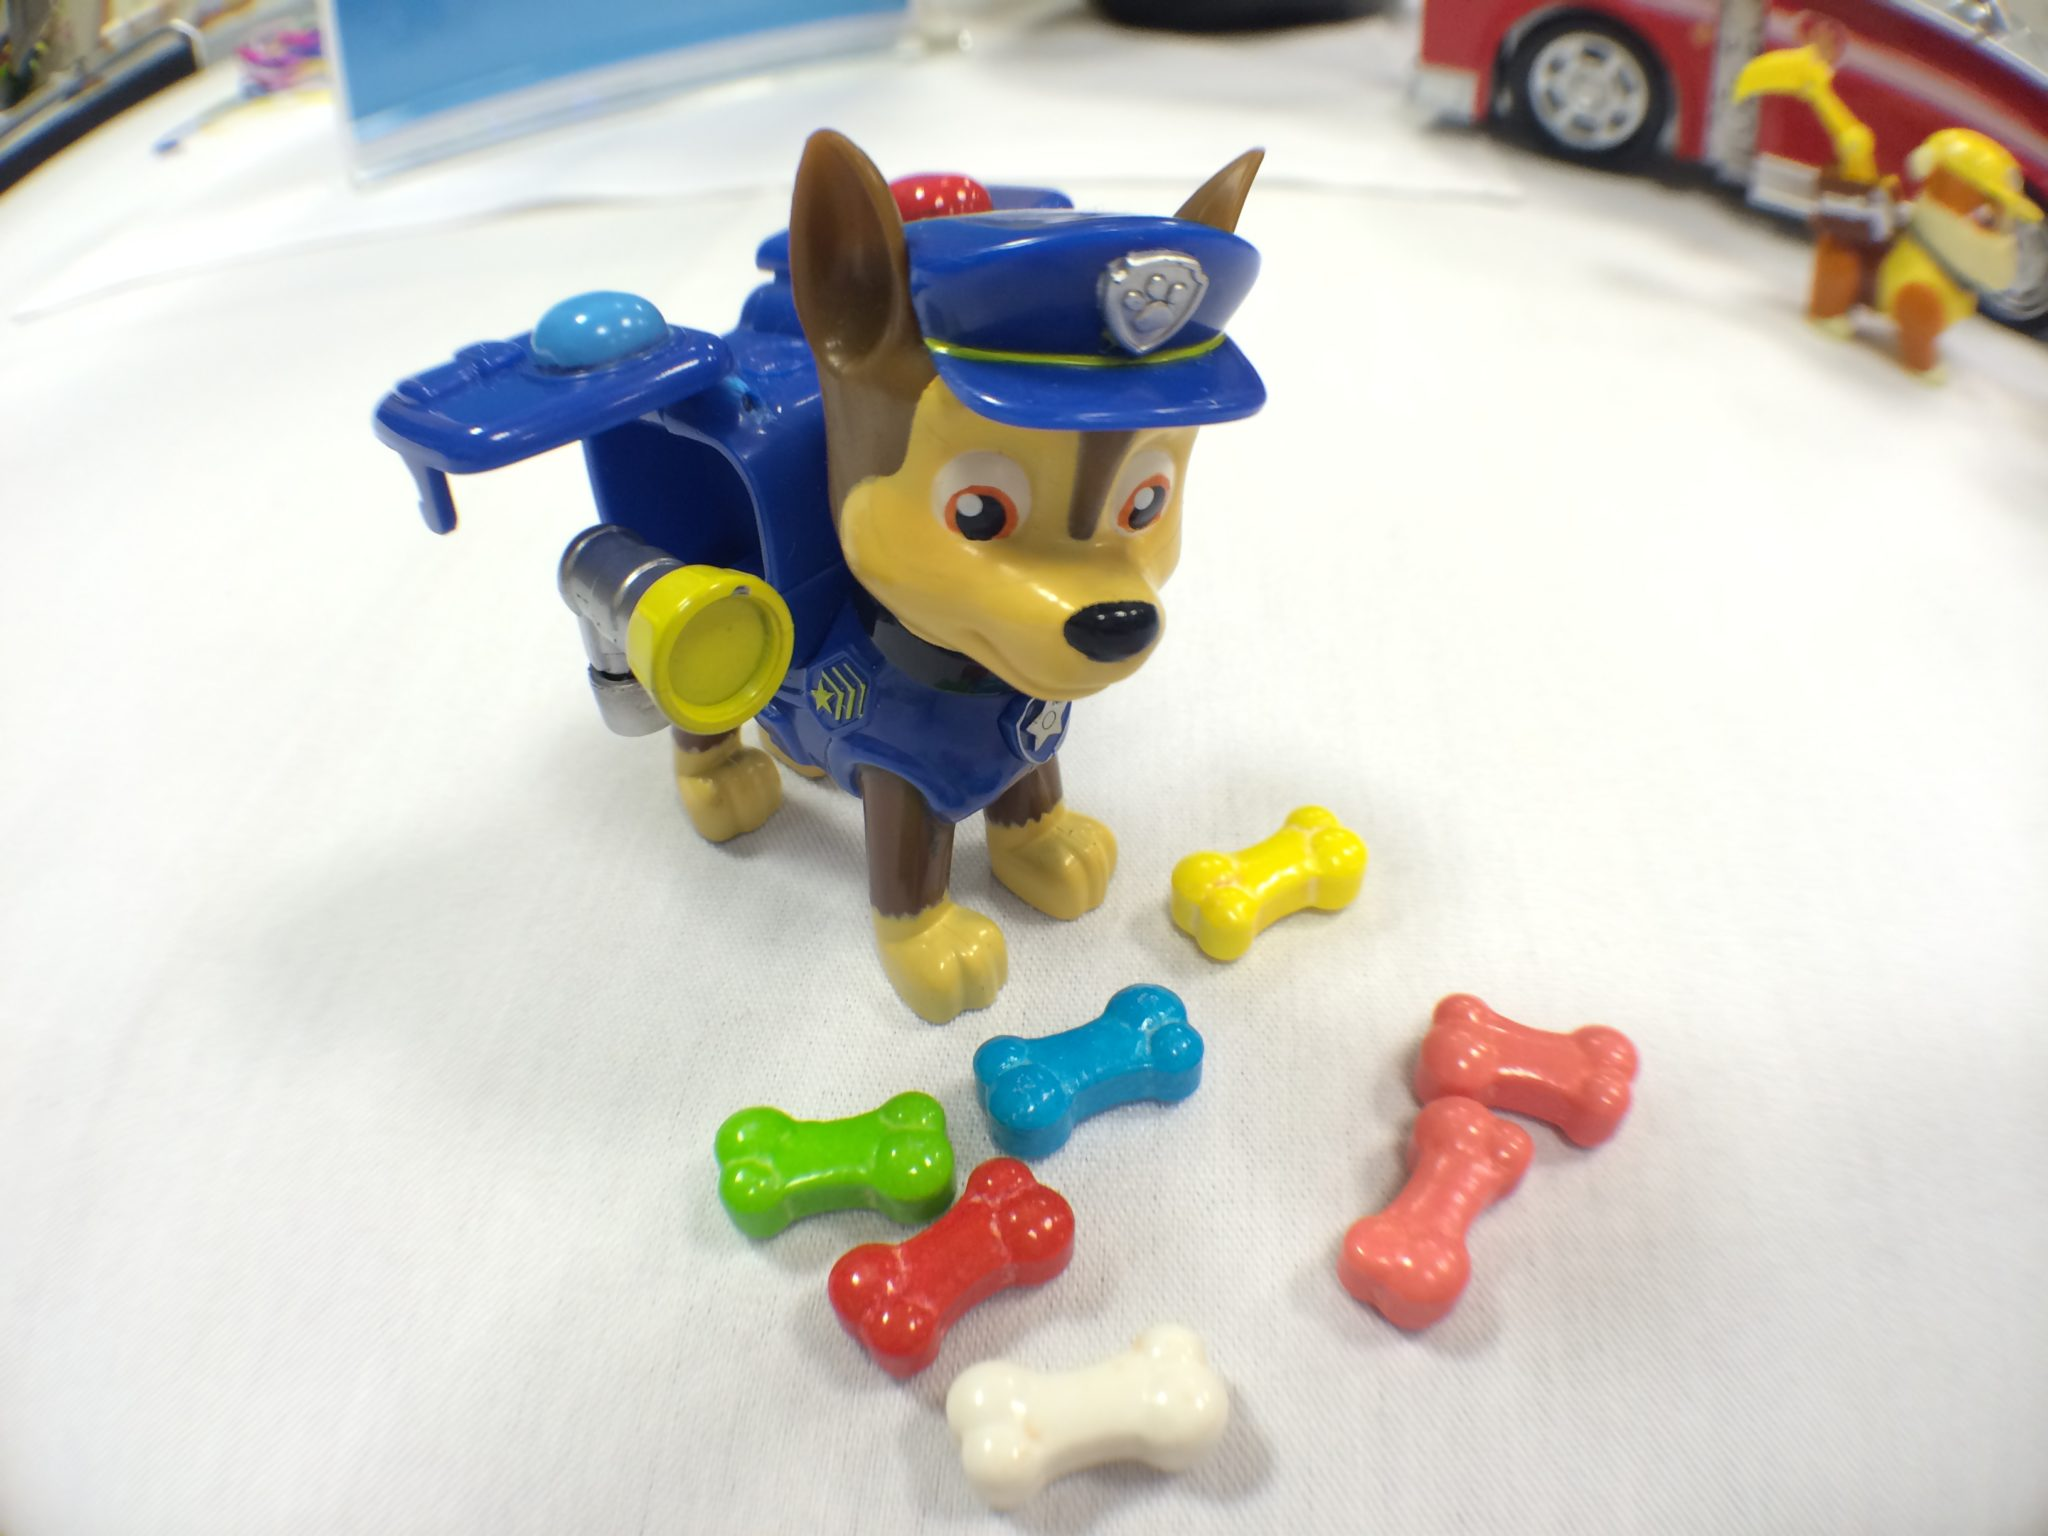 Chase Paw Patrol toys from Spinmaster - ToyQueen.com